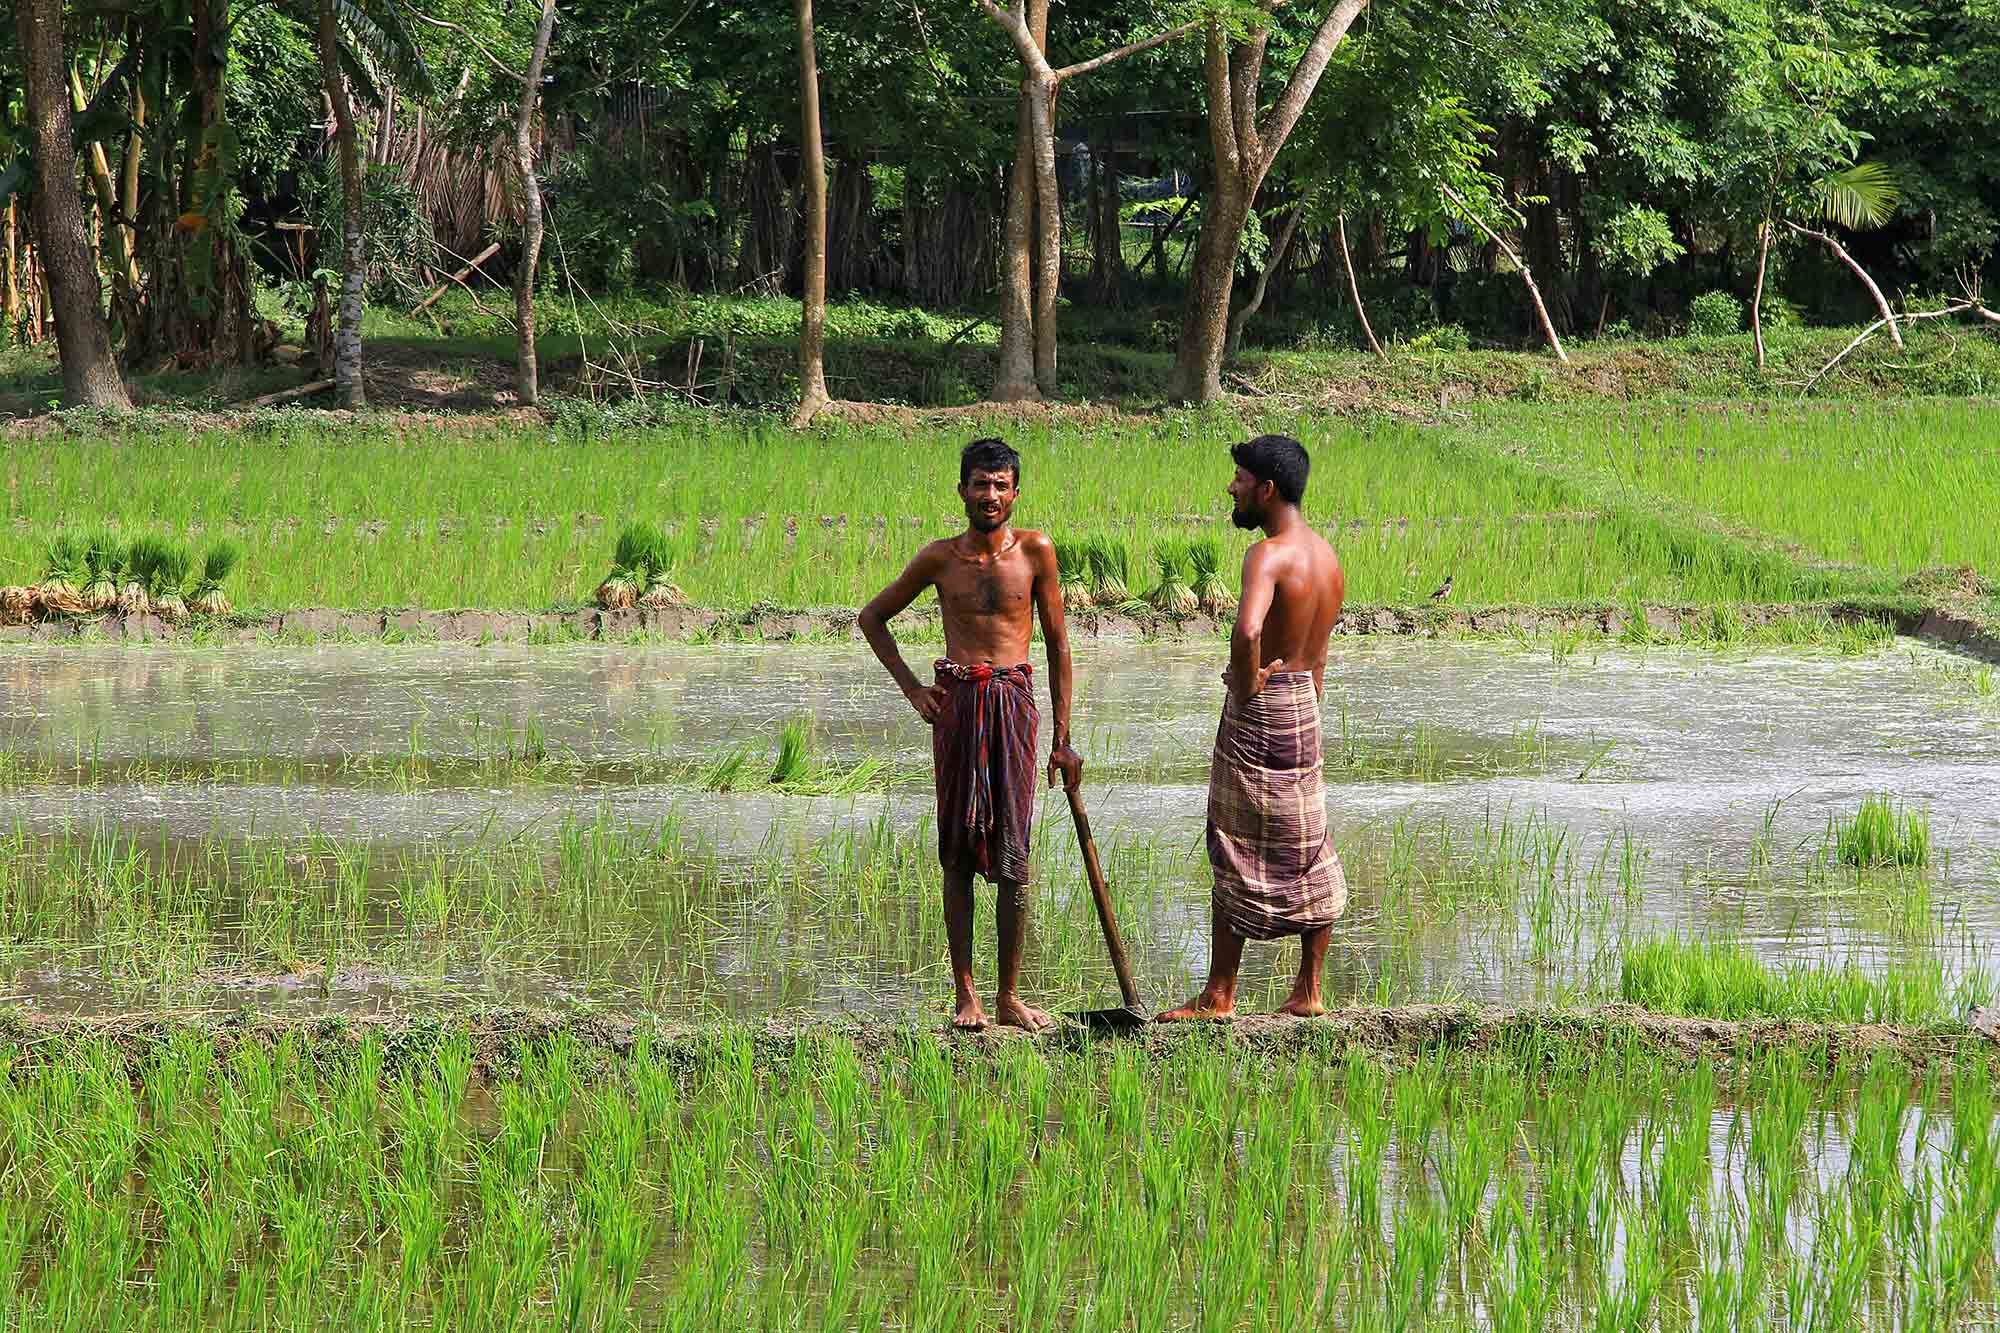 Men working in the rice fields of Galachipa. © Ulli Maier & Nisa Maier